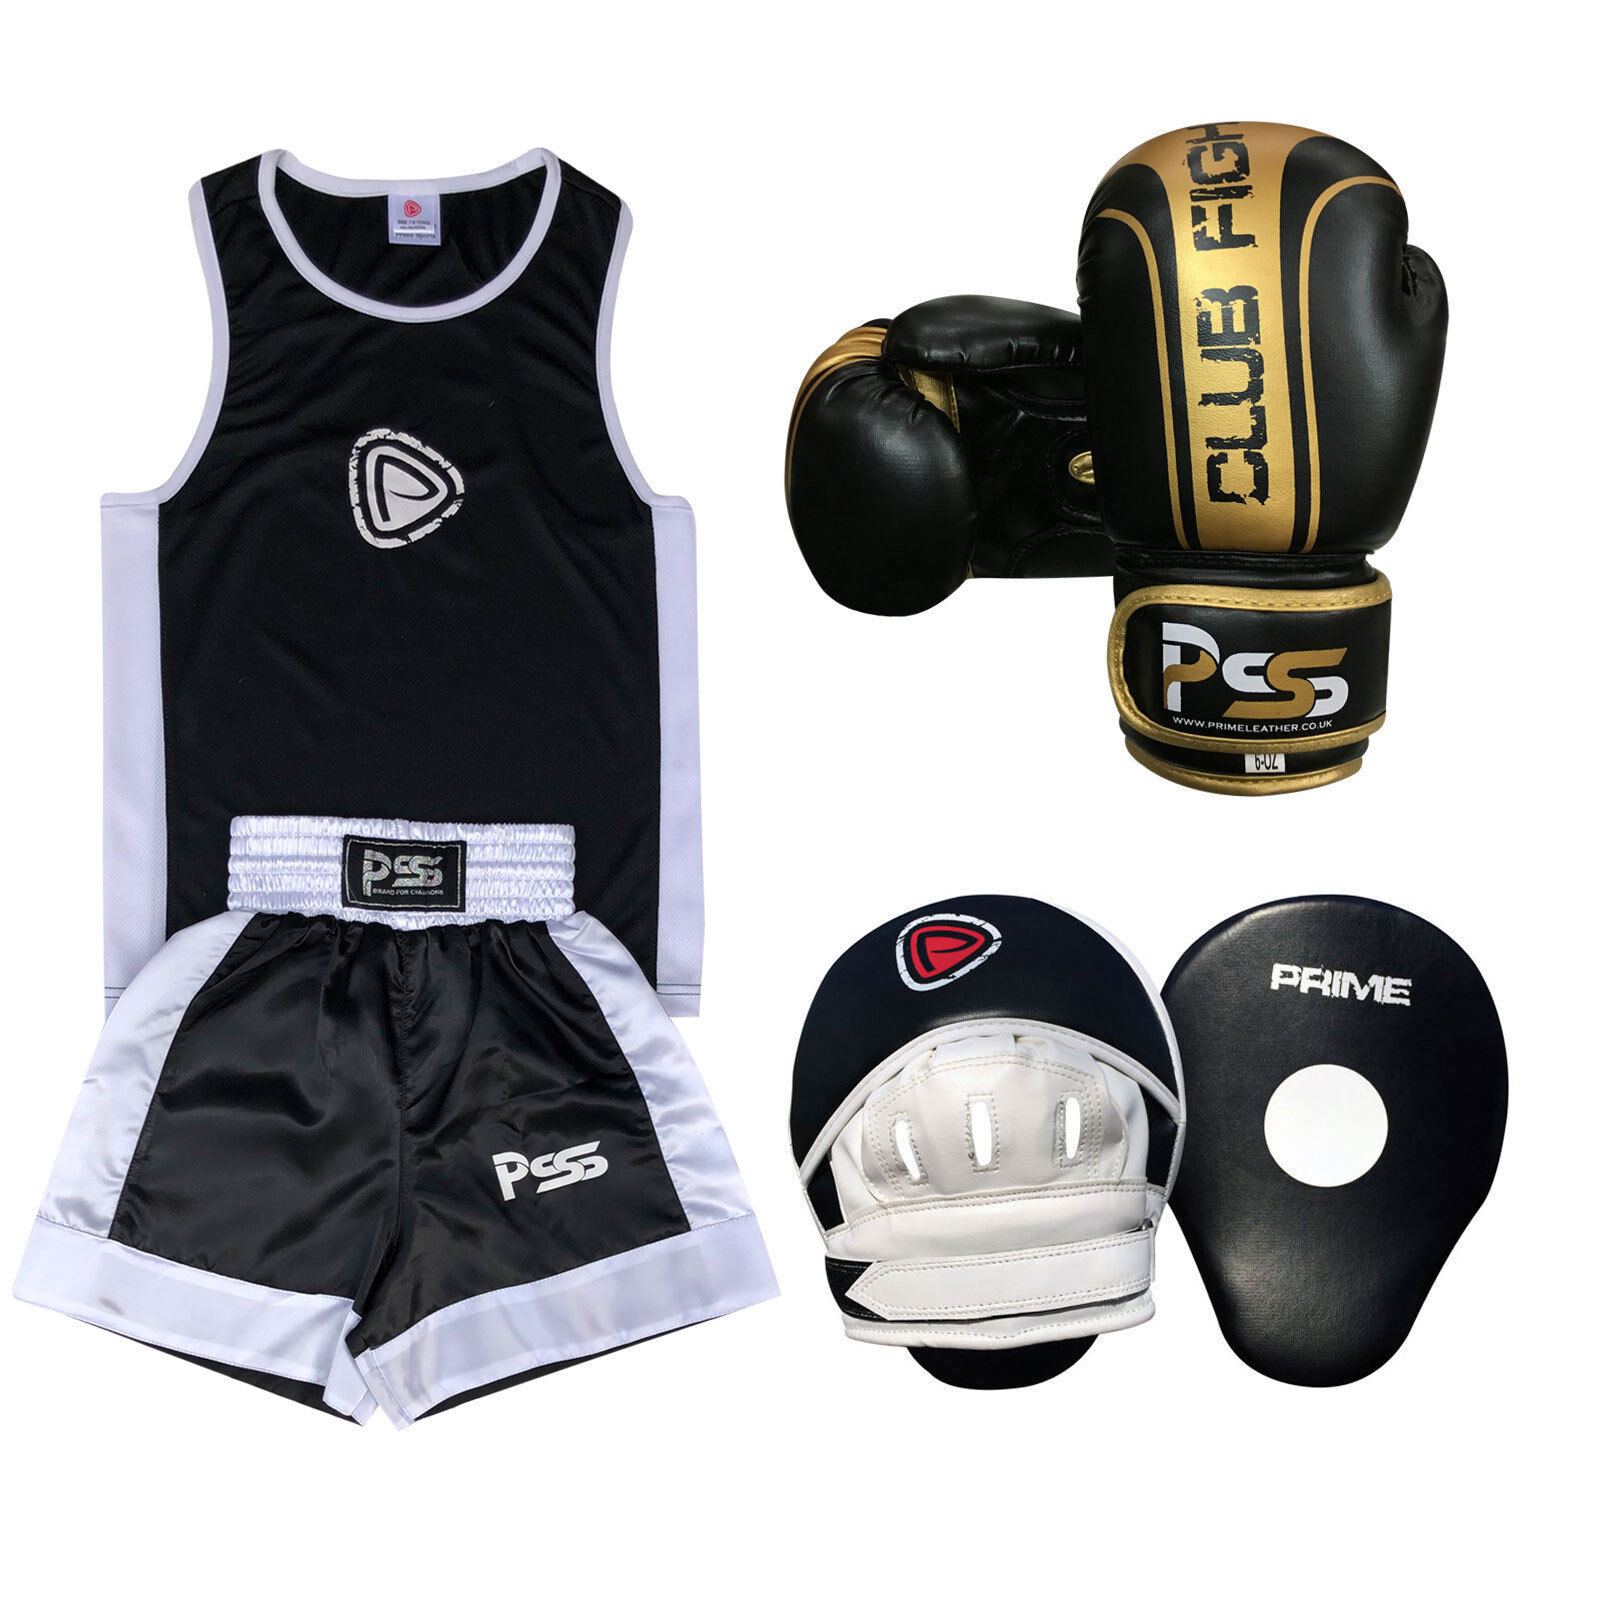 Kids Boxing Uniform Set 3 3 3 PCS Uniform Boxing Gloves 1006 Focus Pads 1102 SET-18 663ba2